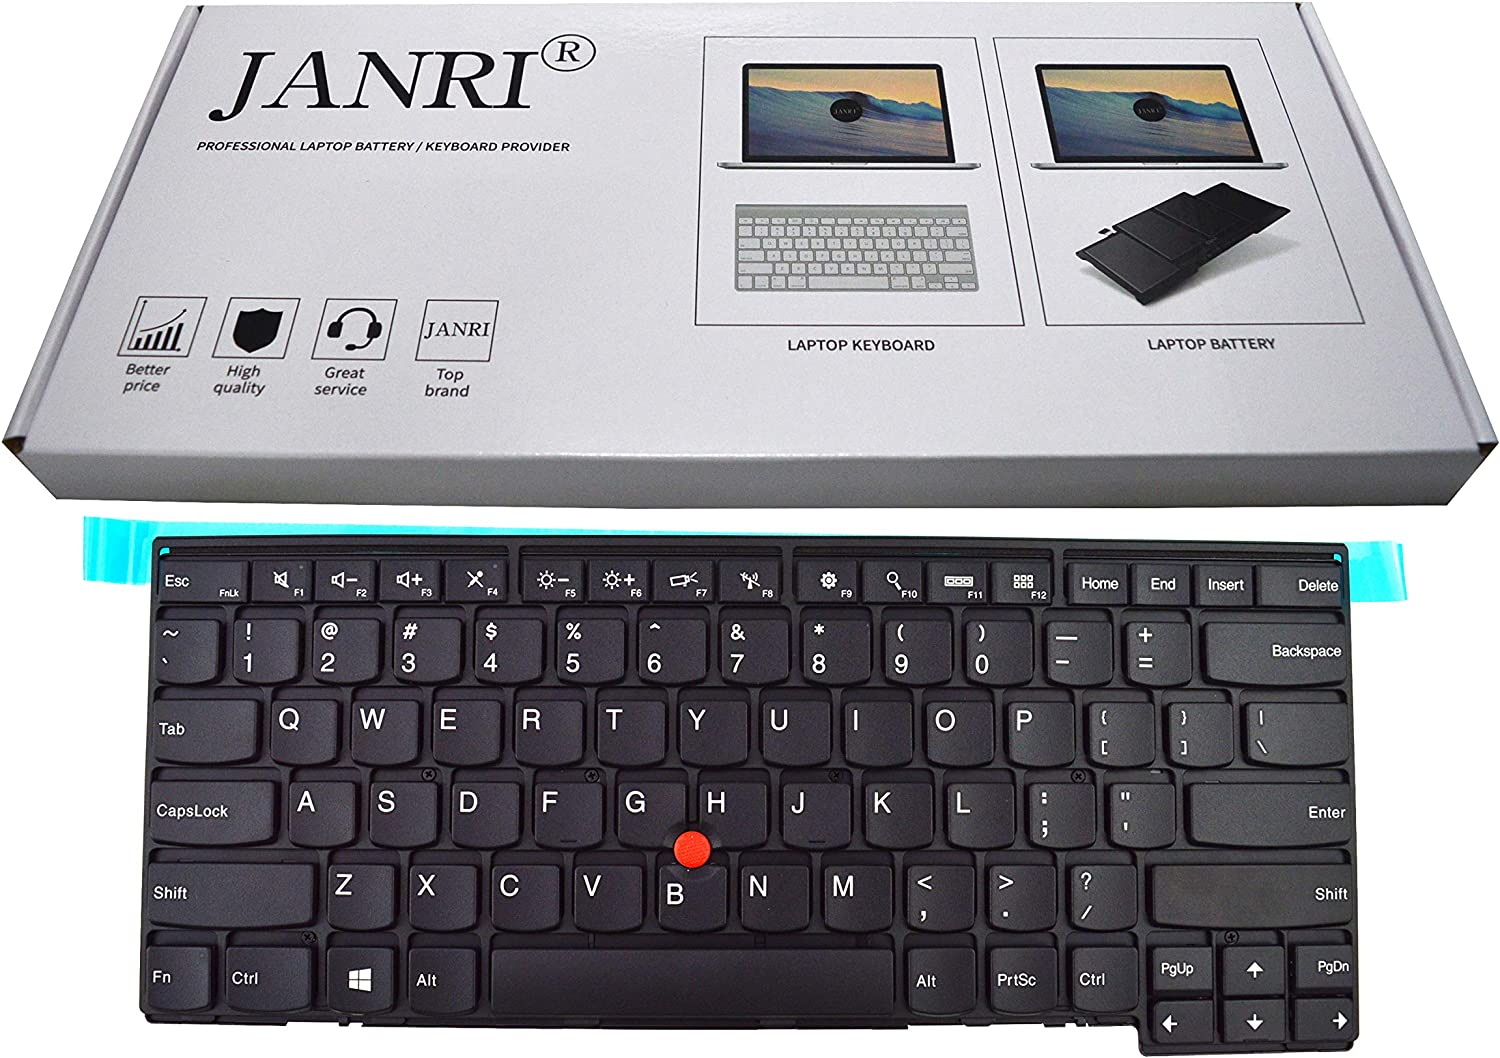 JANRI Replacement US Laptop Keyboard Without Backlit Backlight for Lenovo ThinkPad T431 T431s T440 T440E T440p T440s T450 L440 T450s T460 L450 L460 Edge E431 E440 04X0111 04X0111 04X0101 0C43944